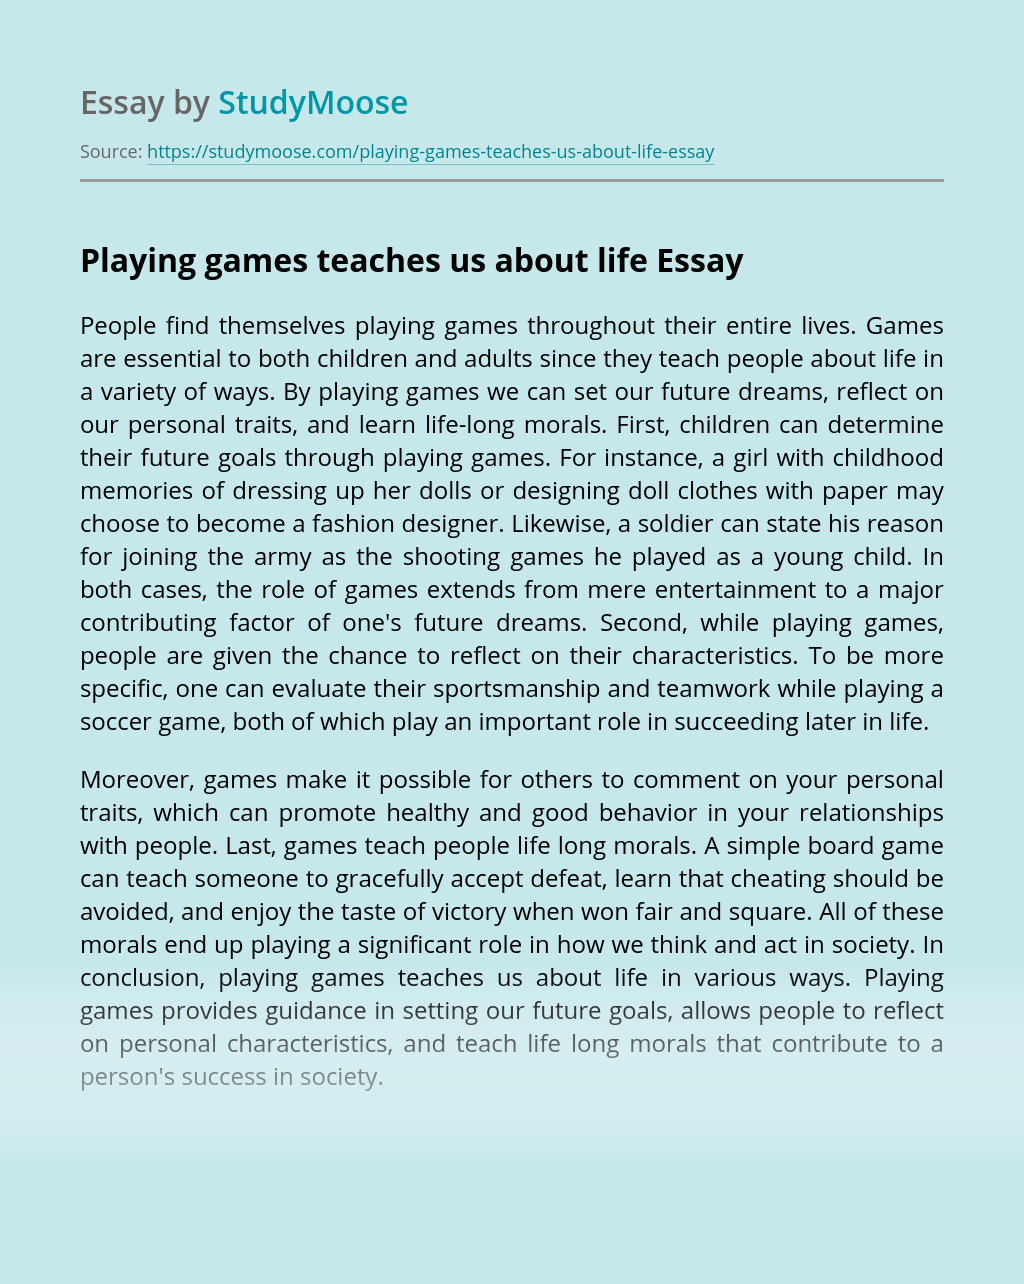 Playing games teaches us about life